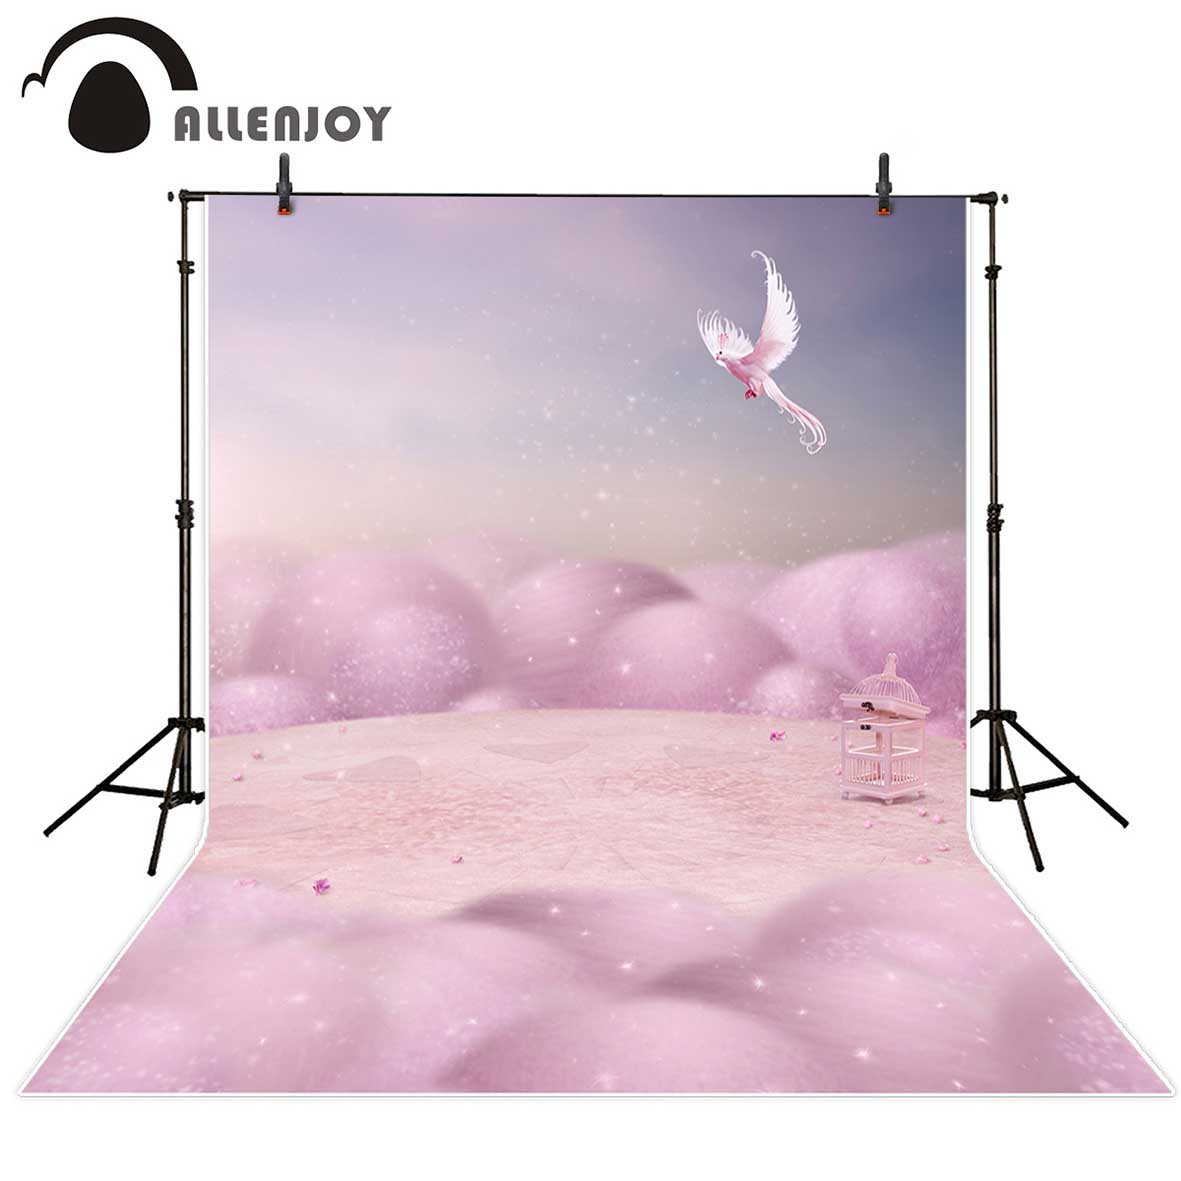 Allenjoy photography Bird cage pink fairytale wonderland Photo studio funds for a photo shoot photography backdrops shoot bird